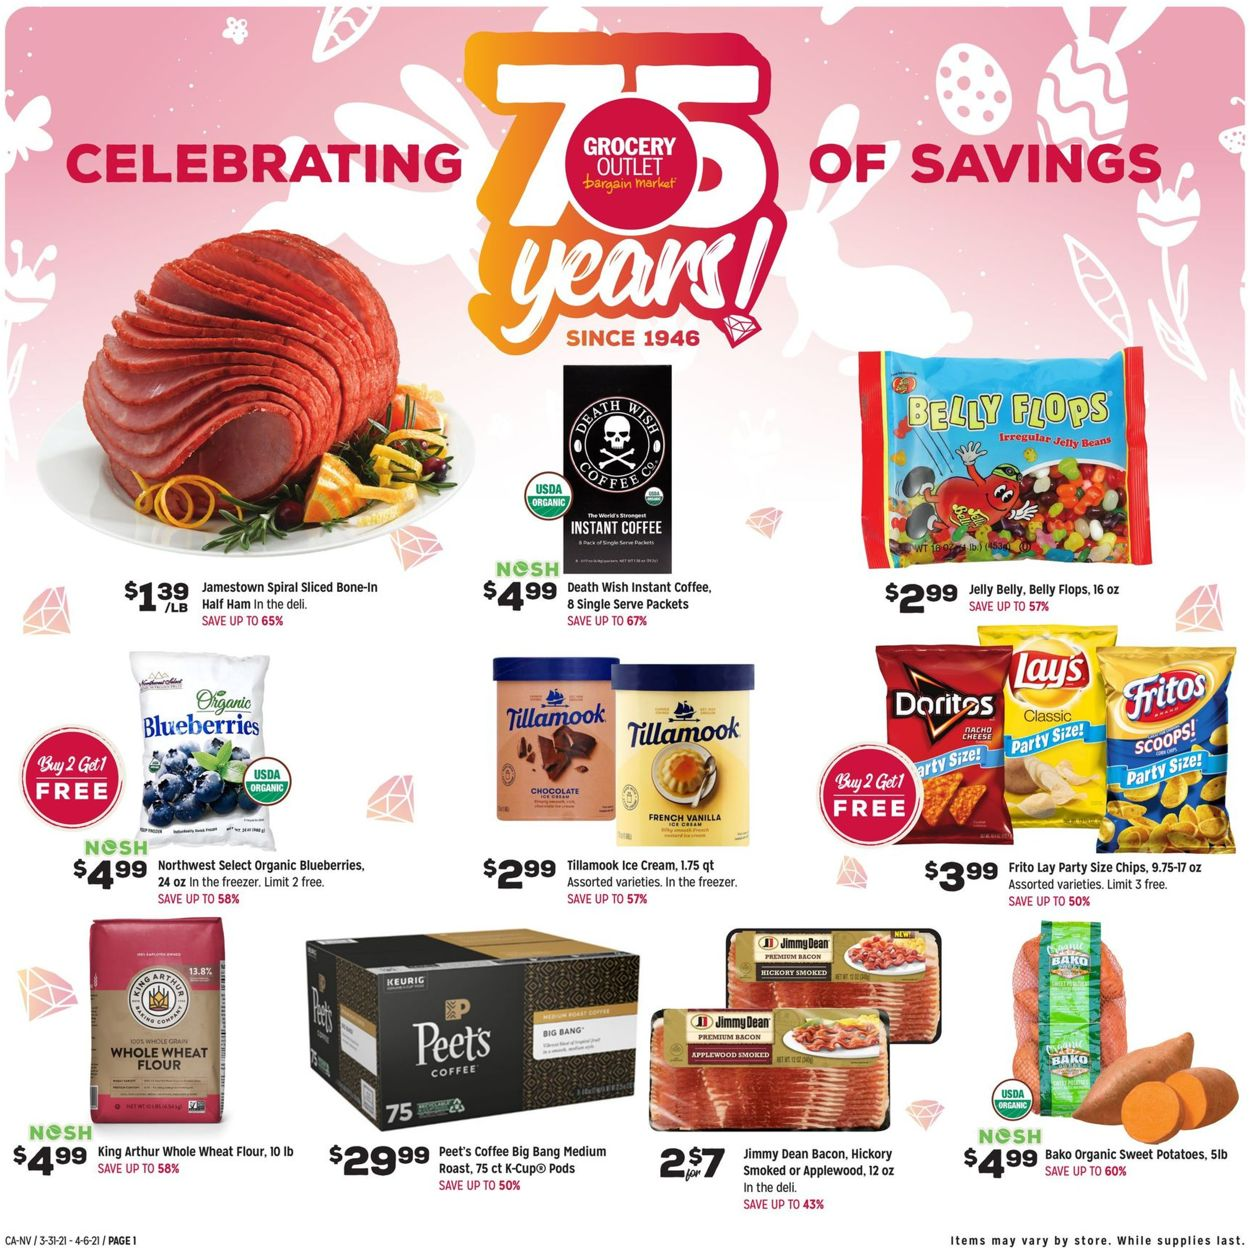 Grocery Outlet Weekly Ad Circular - valid 03/31-04/06/2021